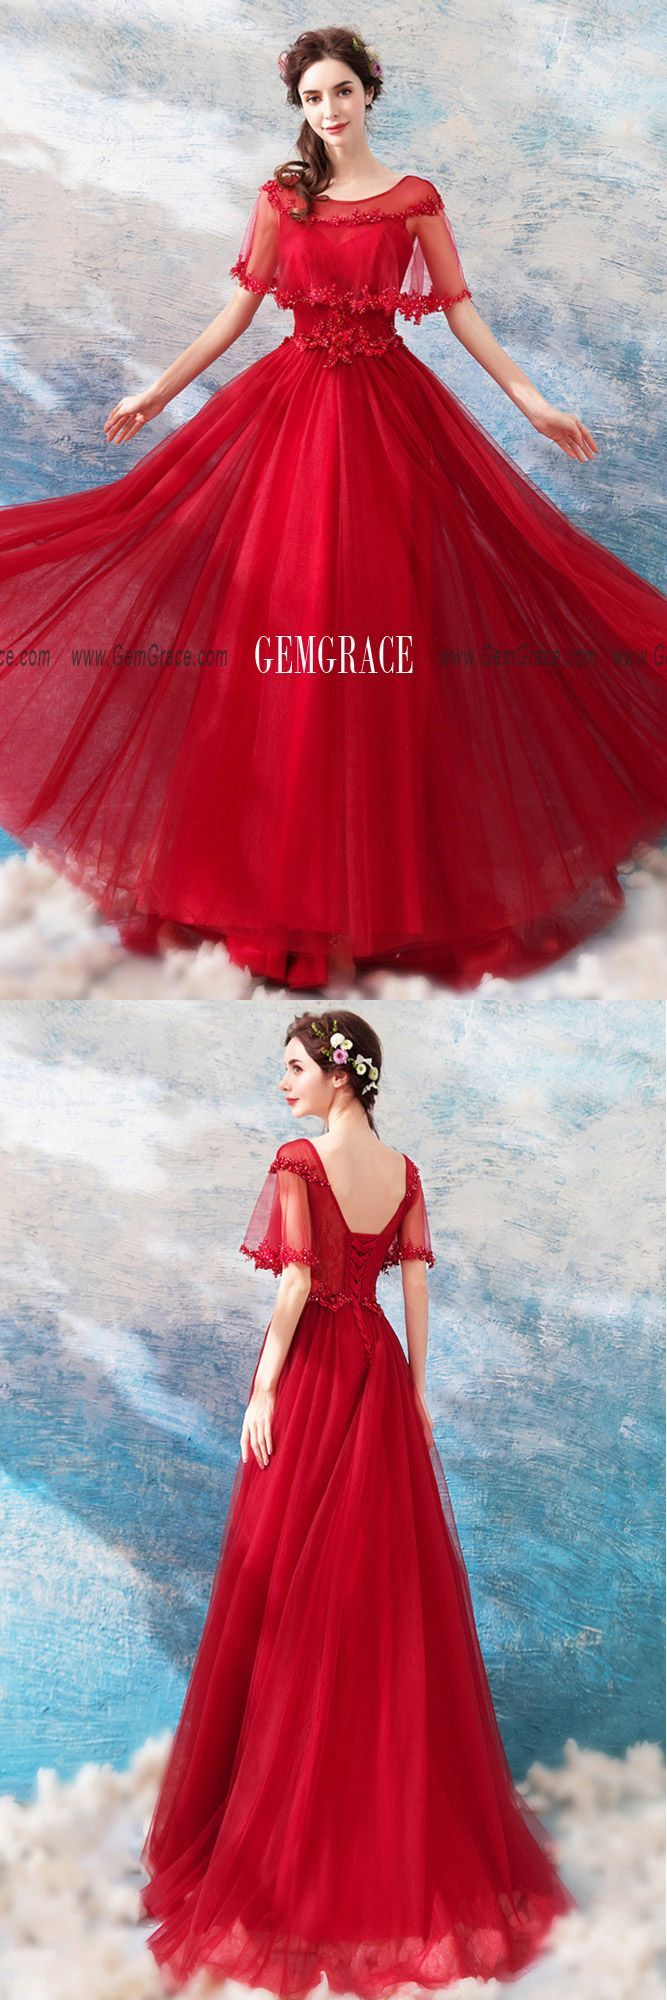 Long Red A Line Elegant Tulle Wedding Party Dress With ...